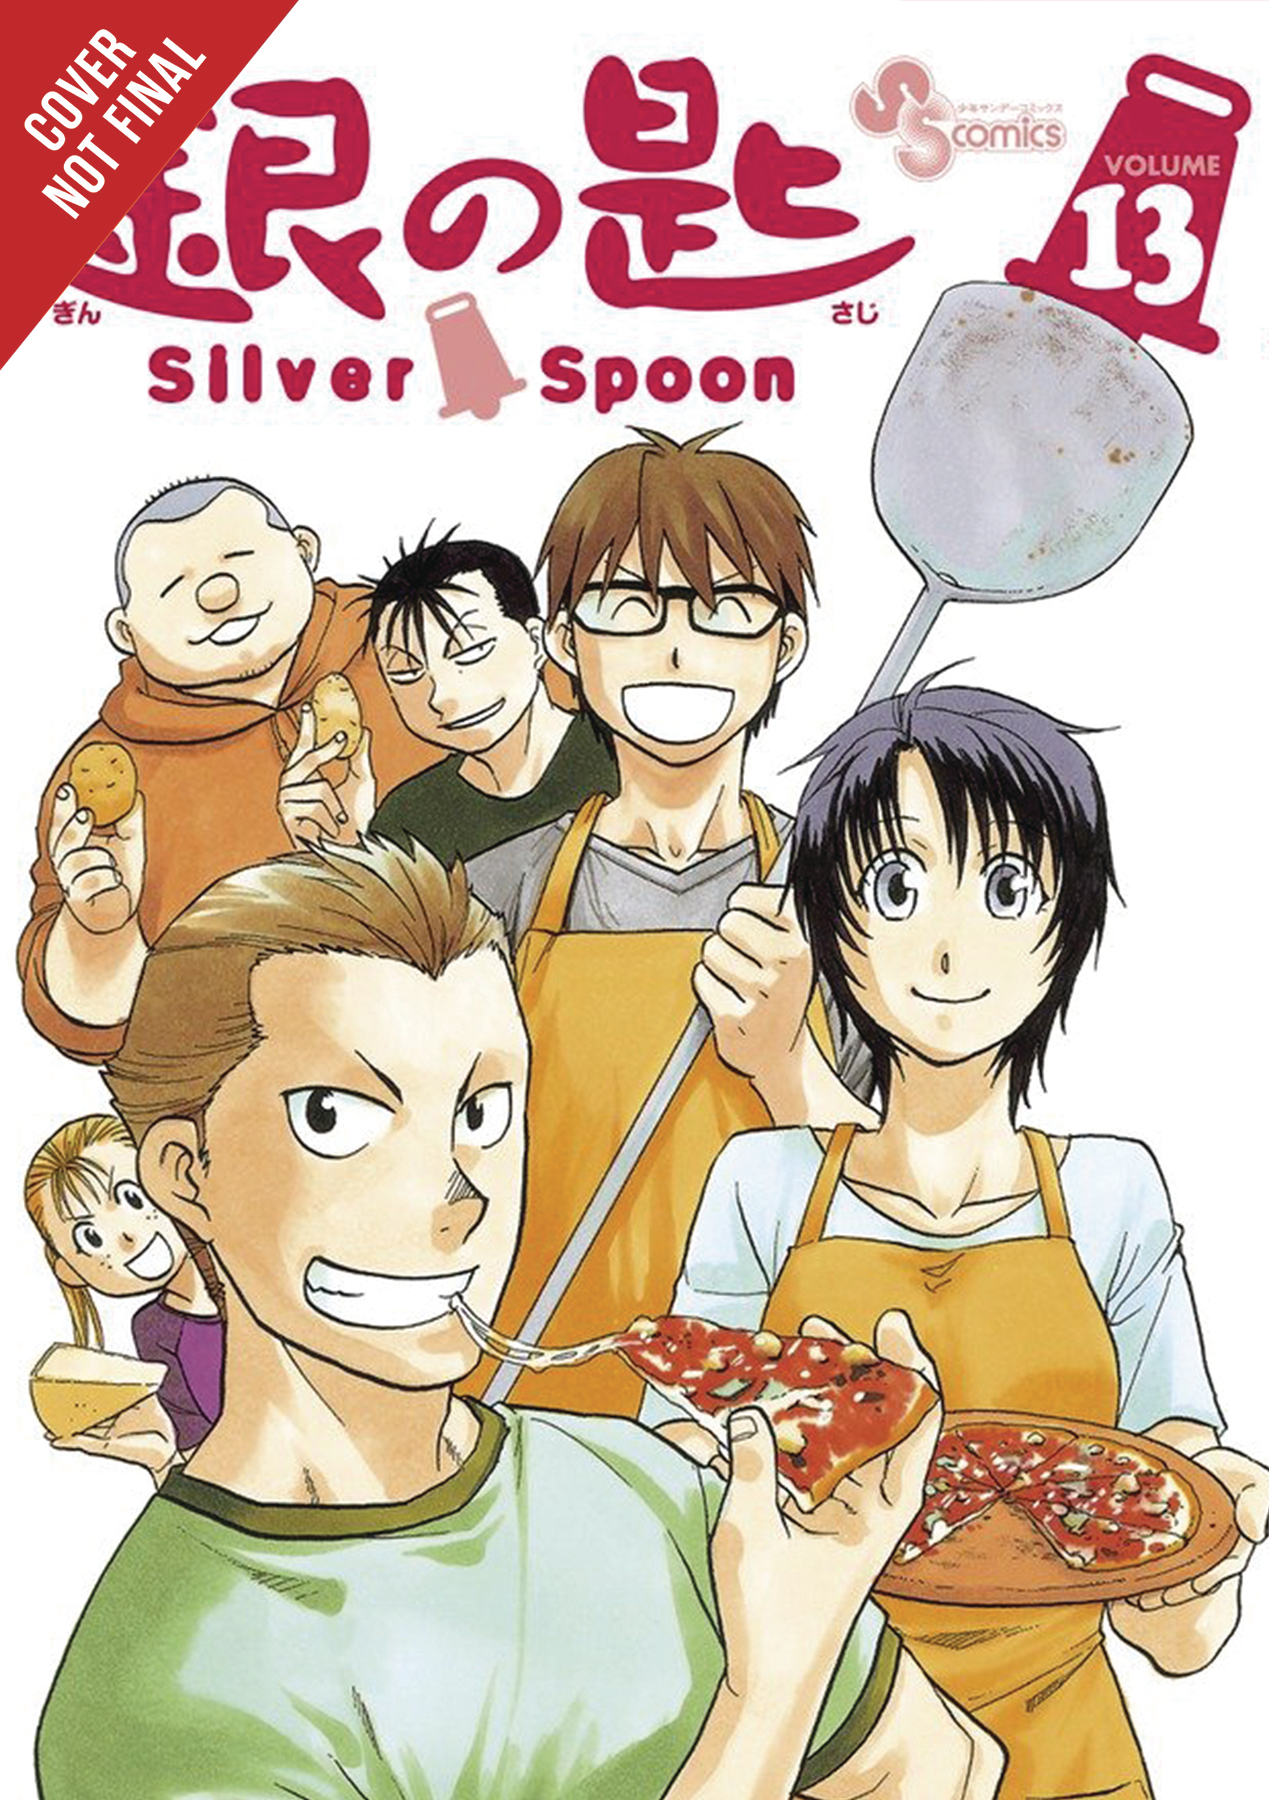 SILVER SPOON GN VOL 13